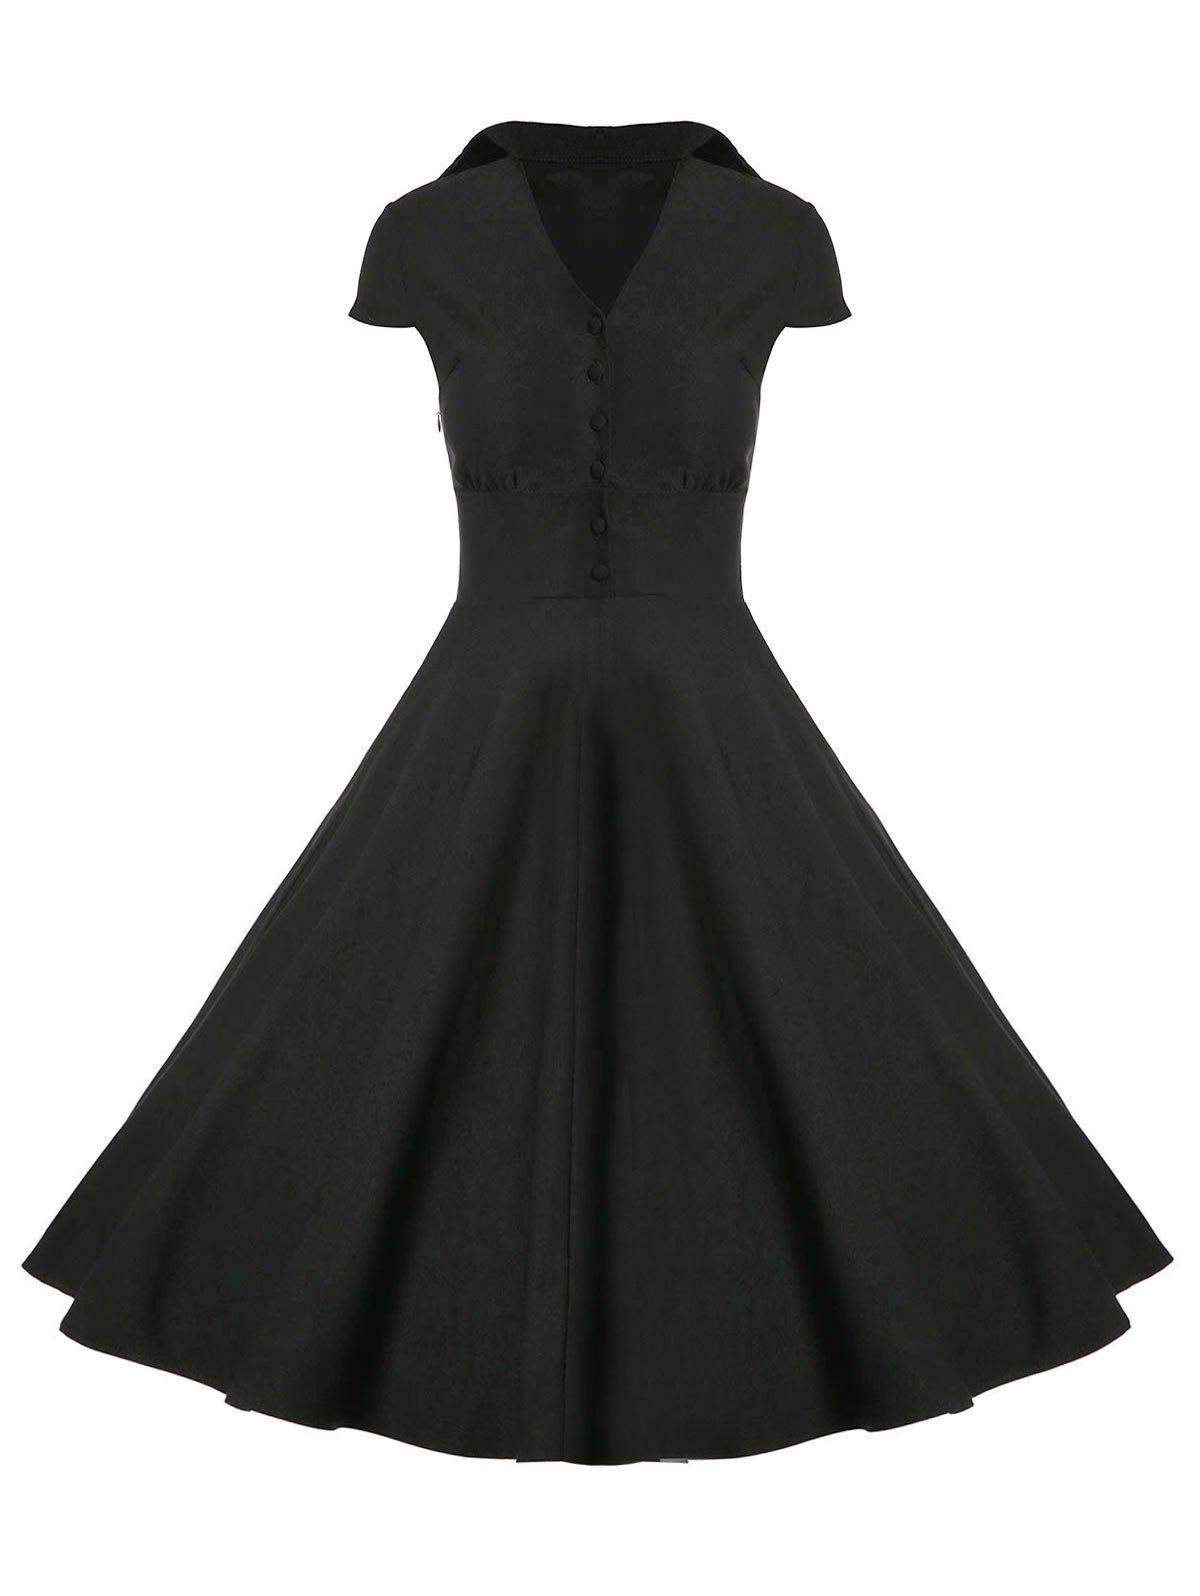 Online A Line Buttoned Vintage Corset Dress with Sleeves